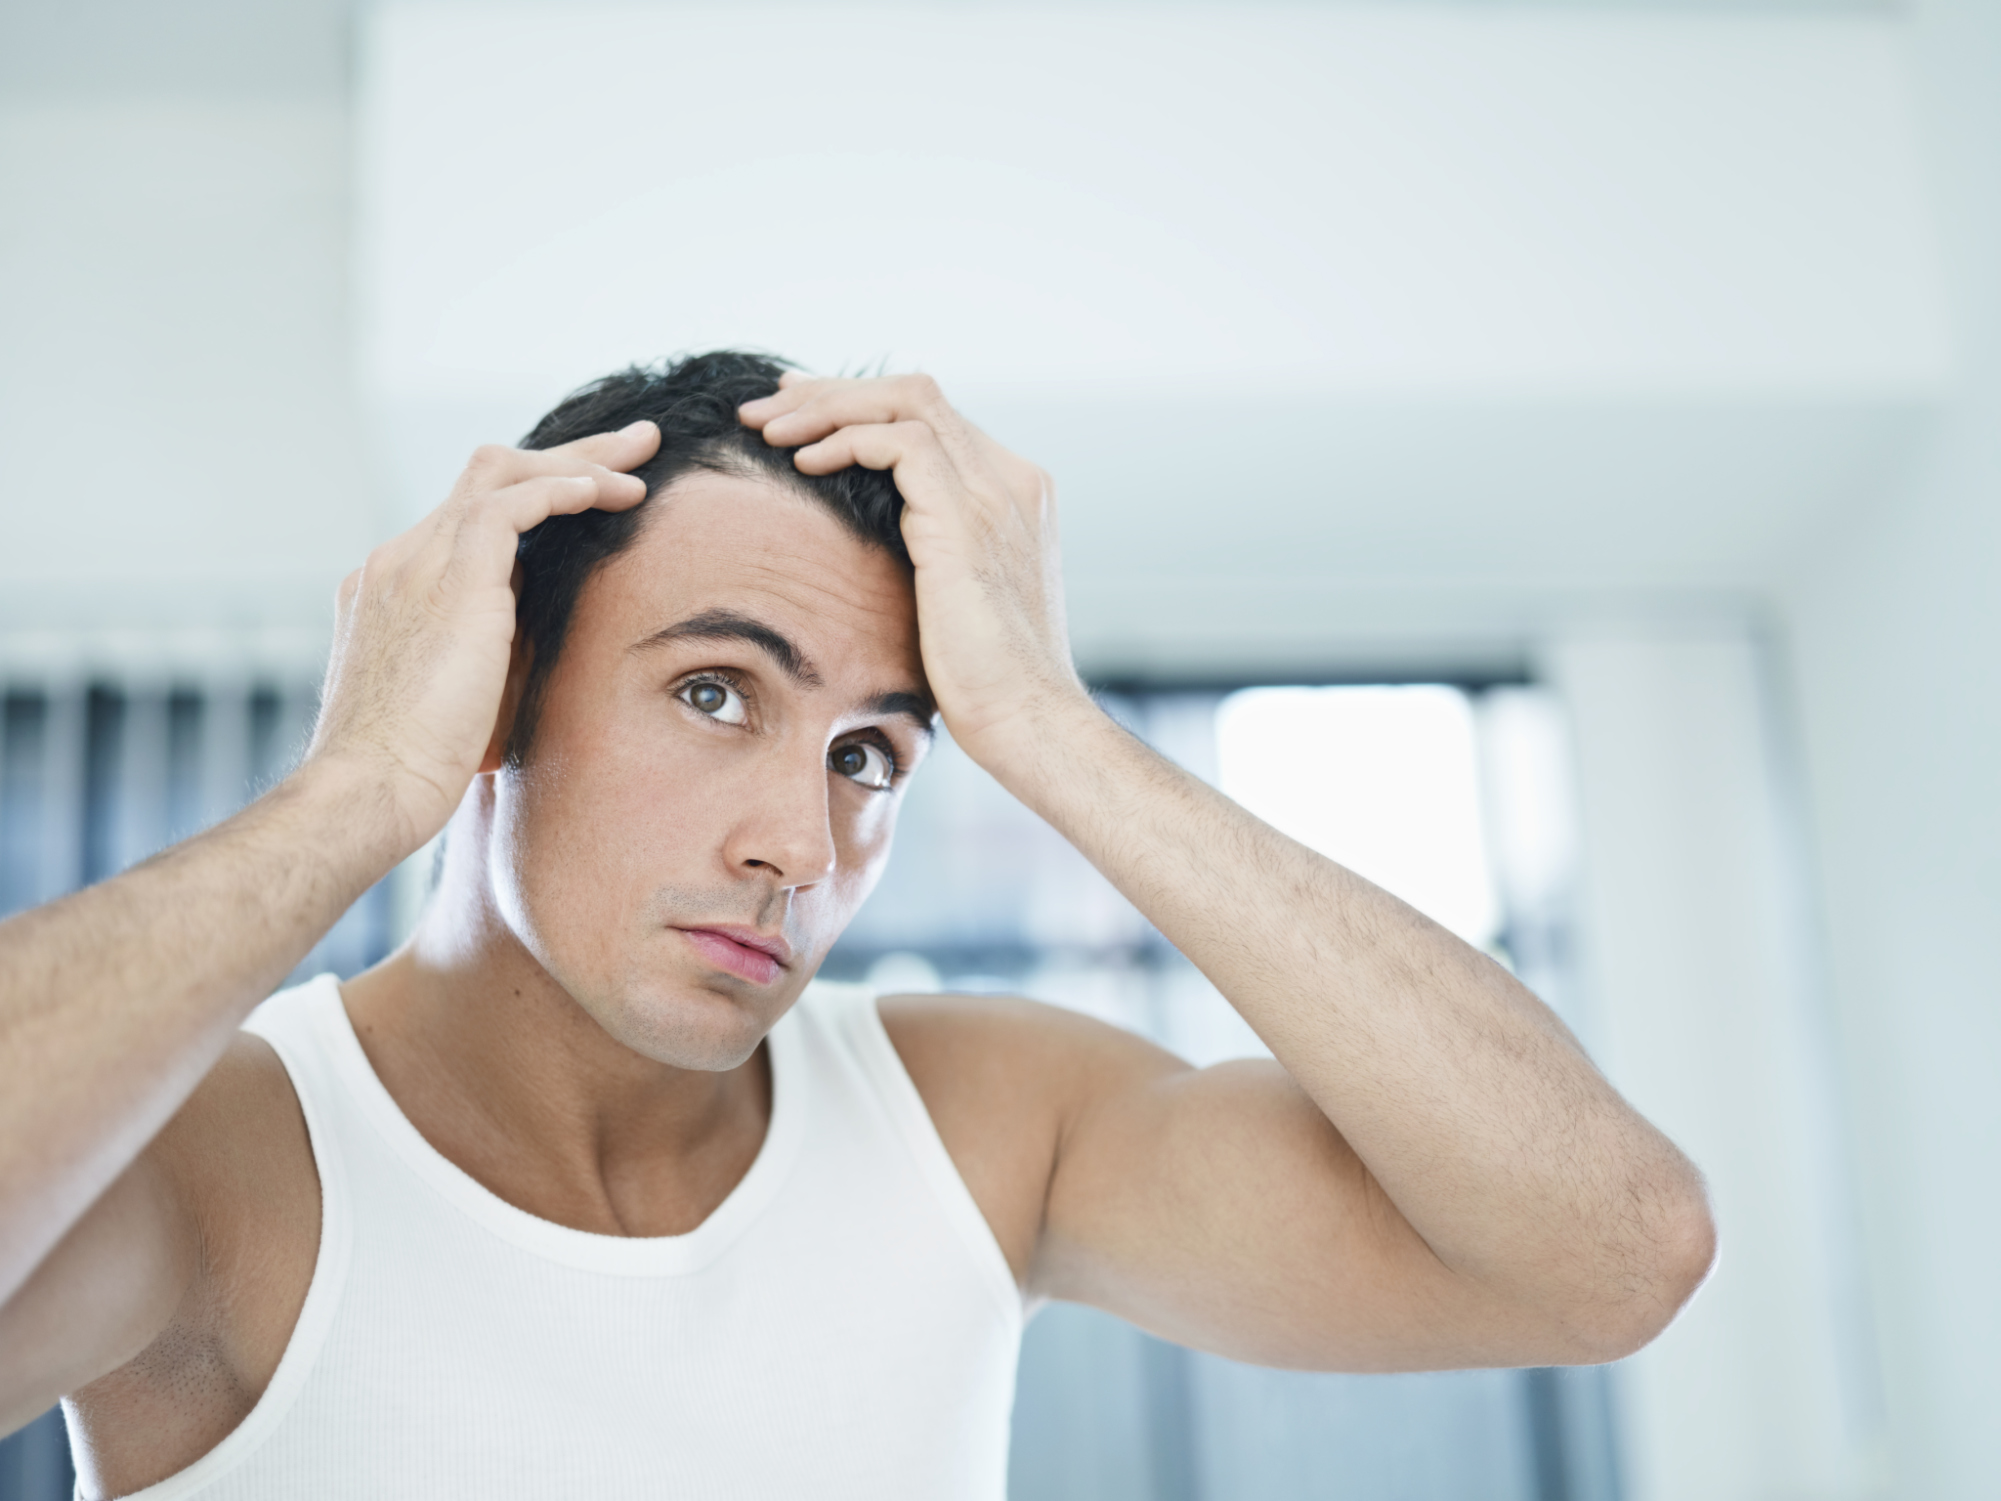 Starting to thin out? Hair loss doesn't have to lead to